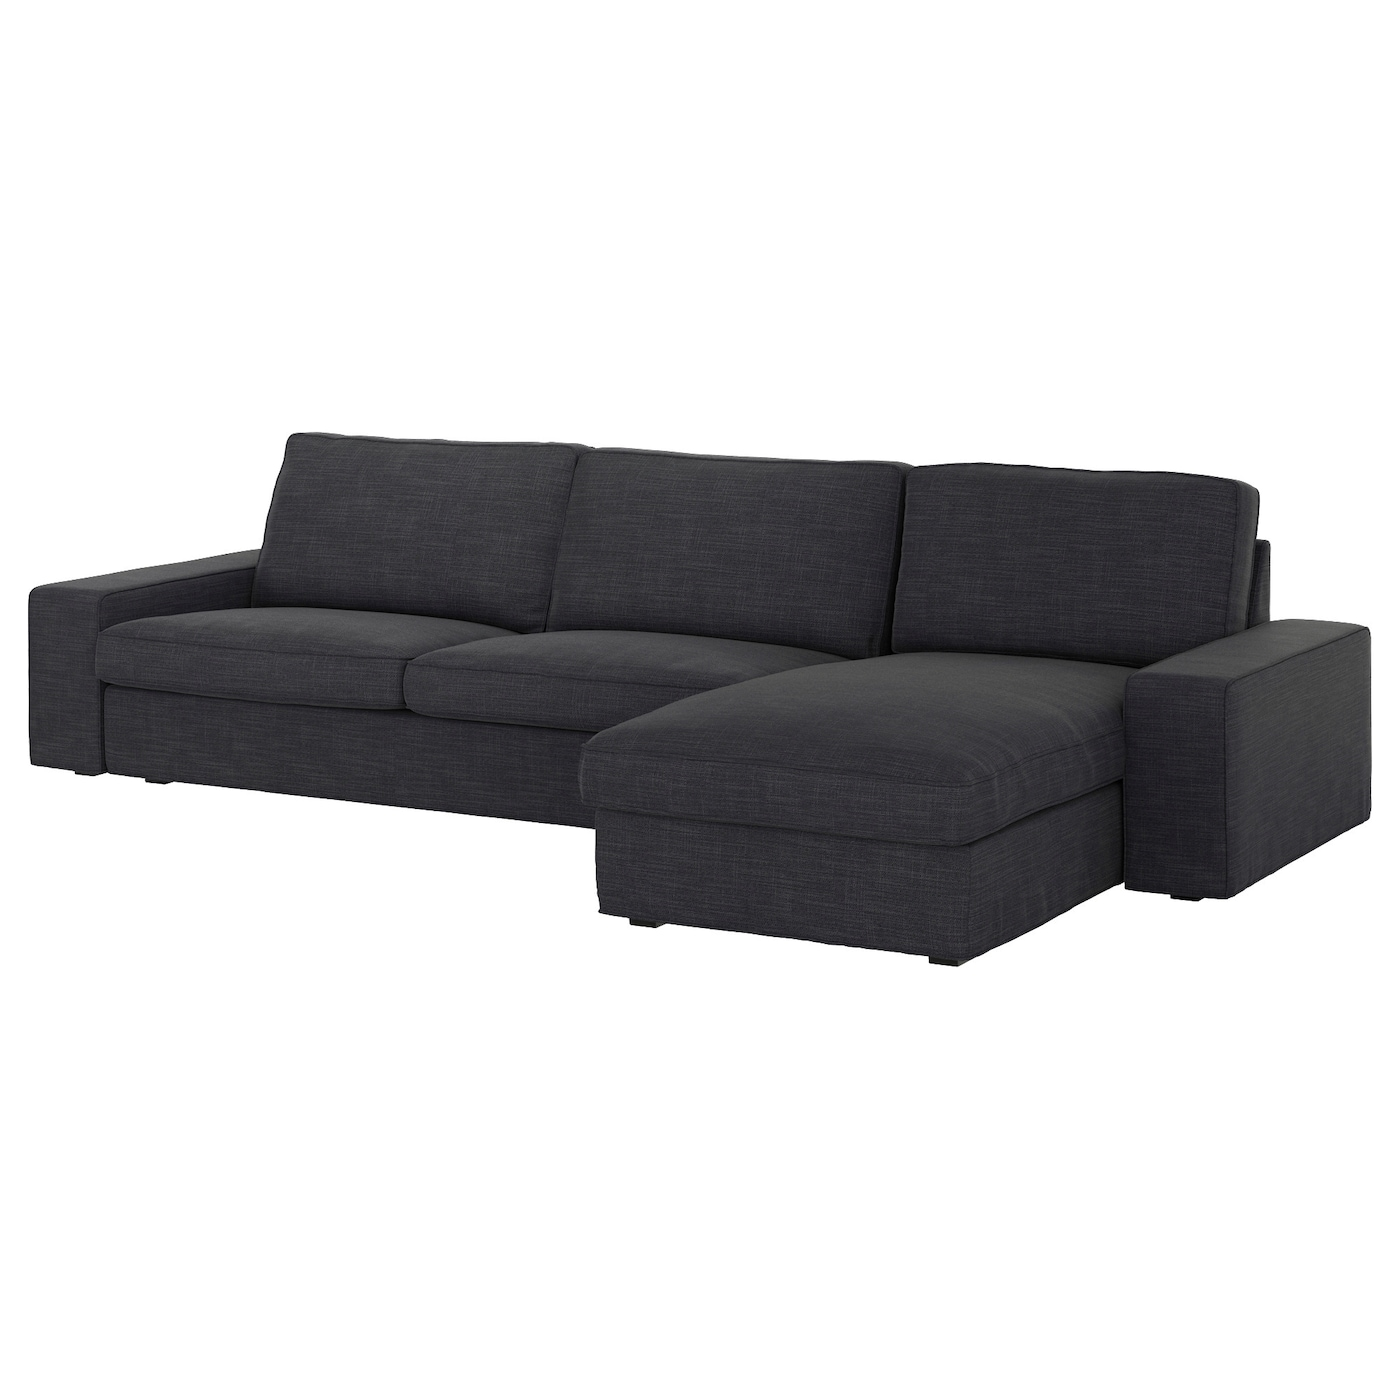 Kivik three seat sofa and chaise longue hillared for 3 seater couch with chaise